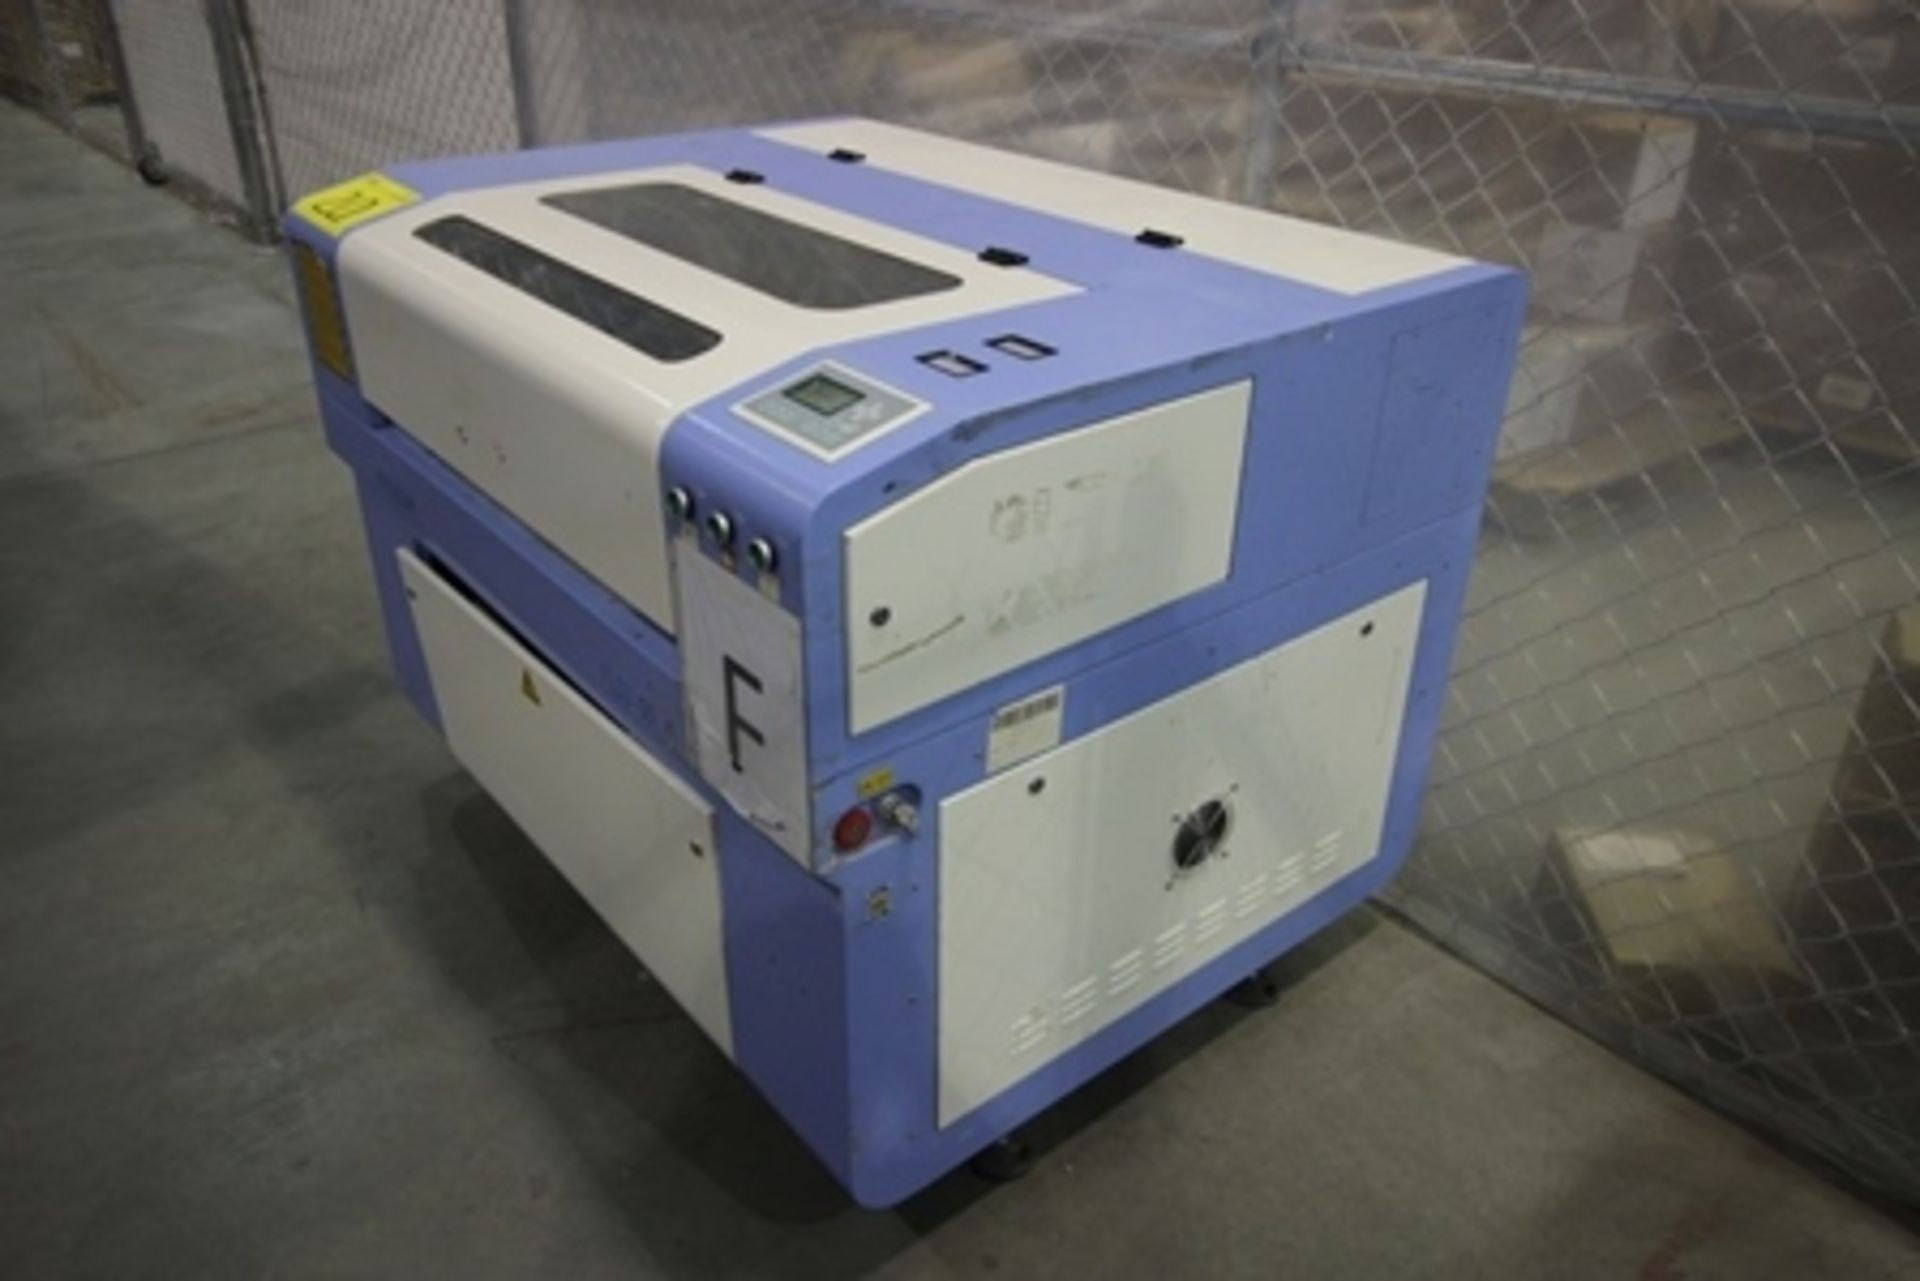 Lot 20 - 2016 Phillican CO2 laser engraver and cutting machine, model 6090.